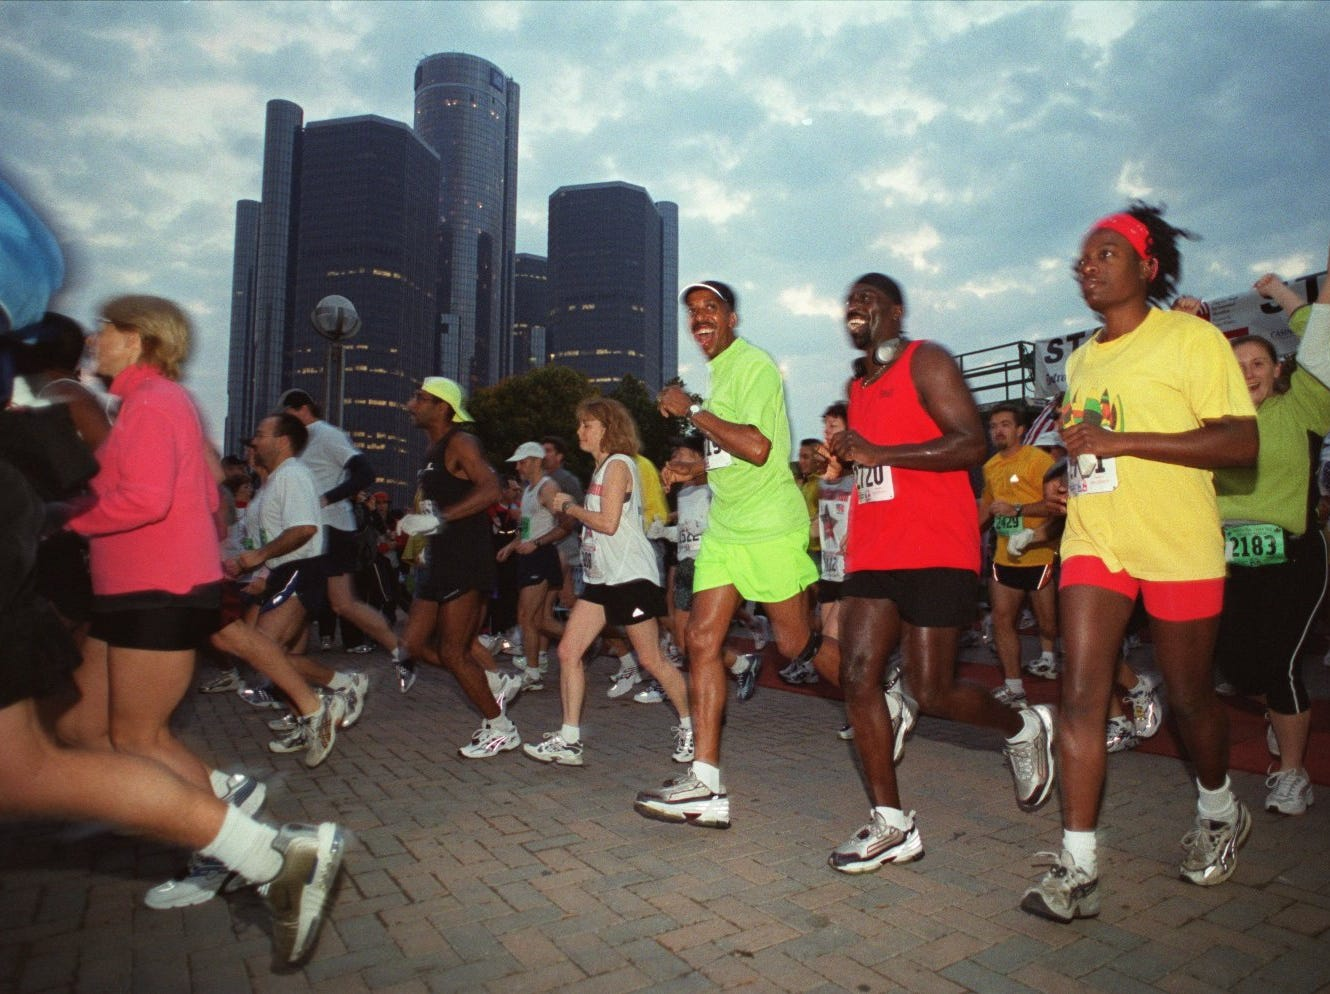 Participants leave the starting line of the Free Press/Flagstar International Marathon Sunday morning at Hart Plaza in 2001. About 3,000 registered in the marathon, about 1500 in the 5K, about 500 in the relay, and 17 in wheelchairs.